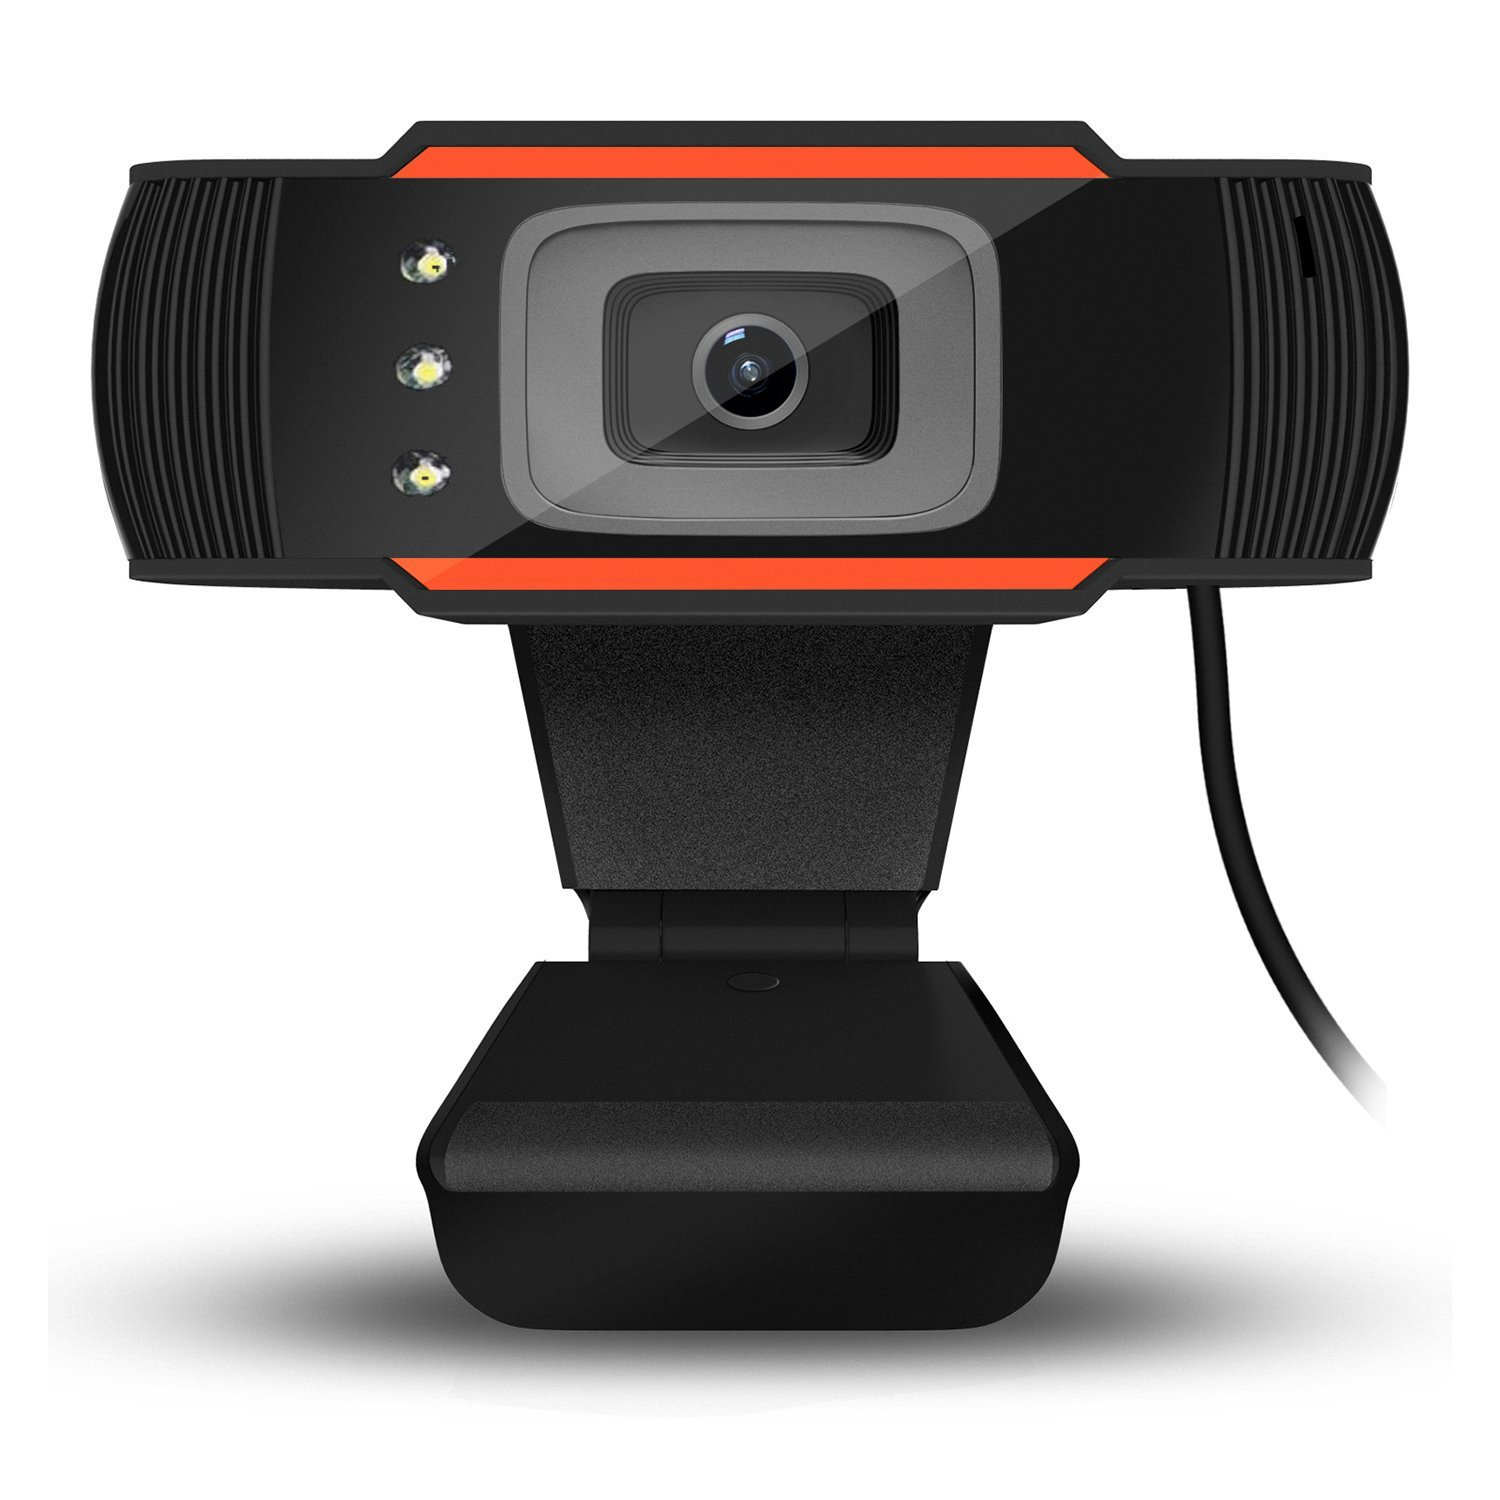 HD Webcam with Microphone, Desktop Portable Webcam for Computer